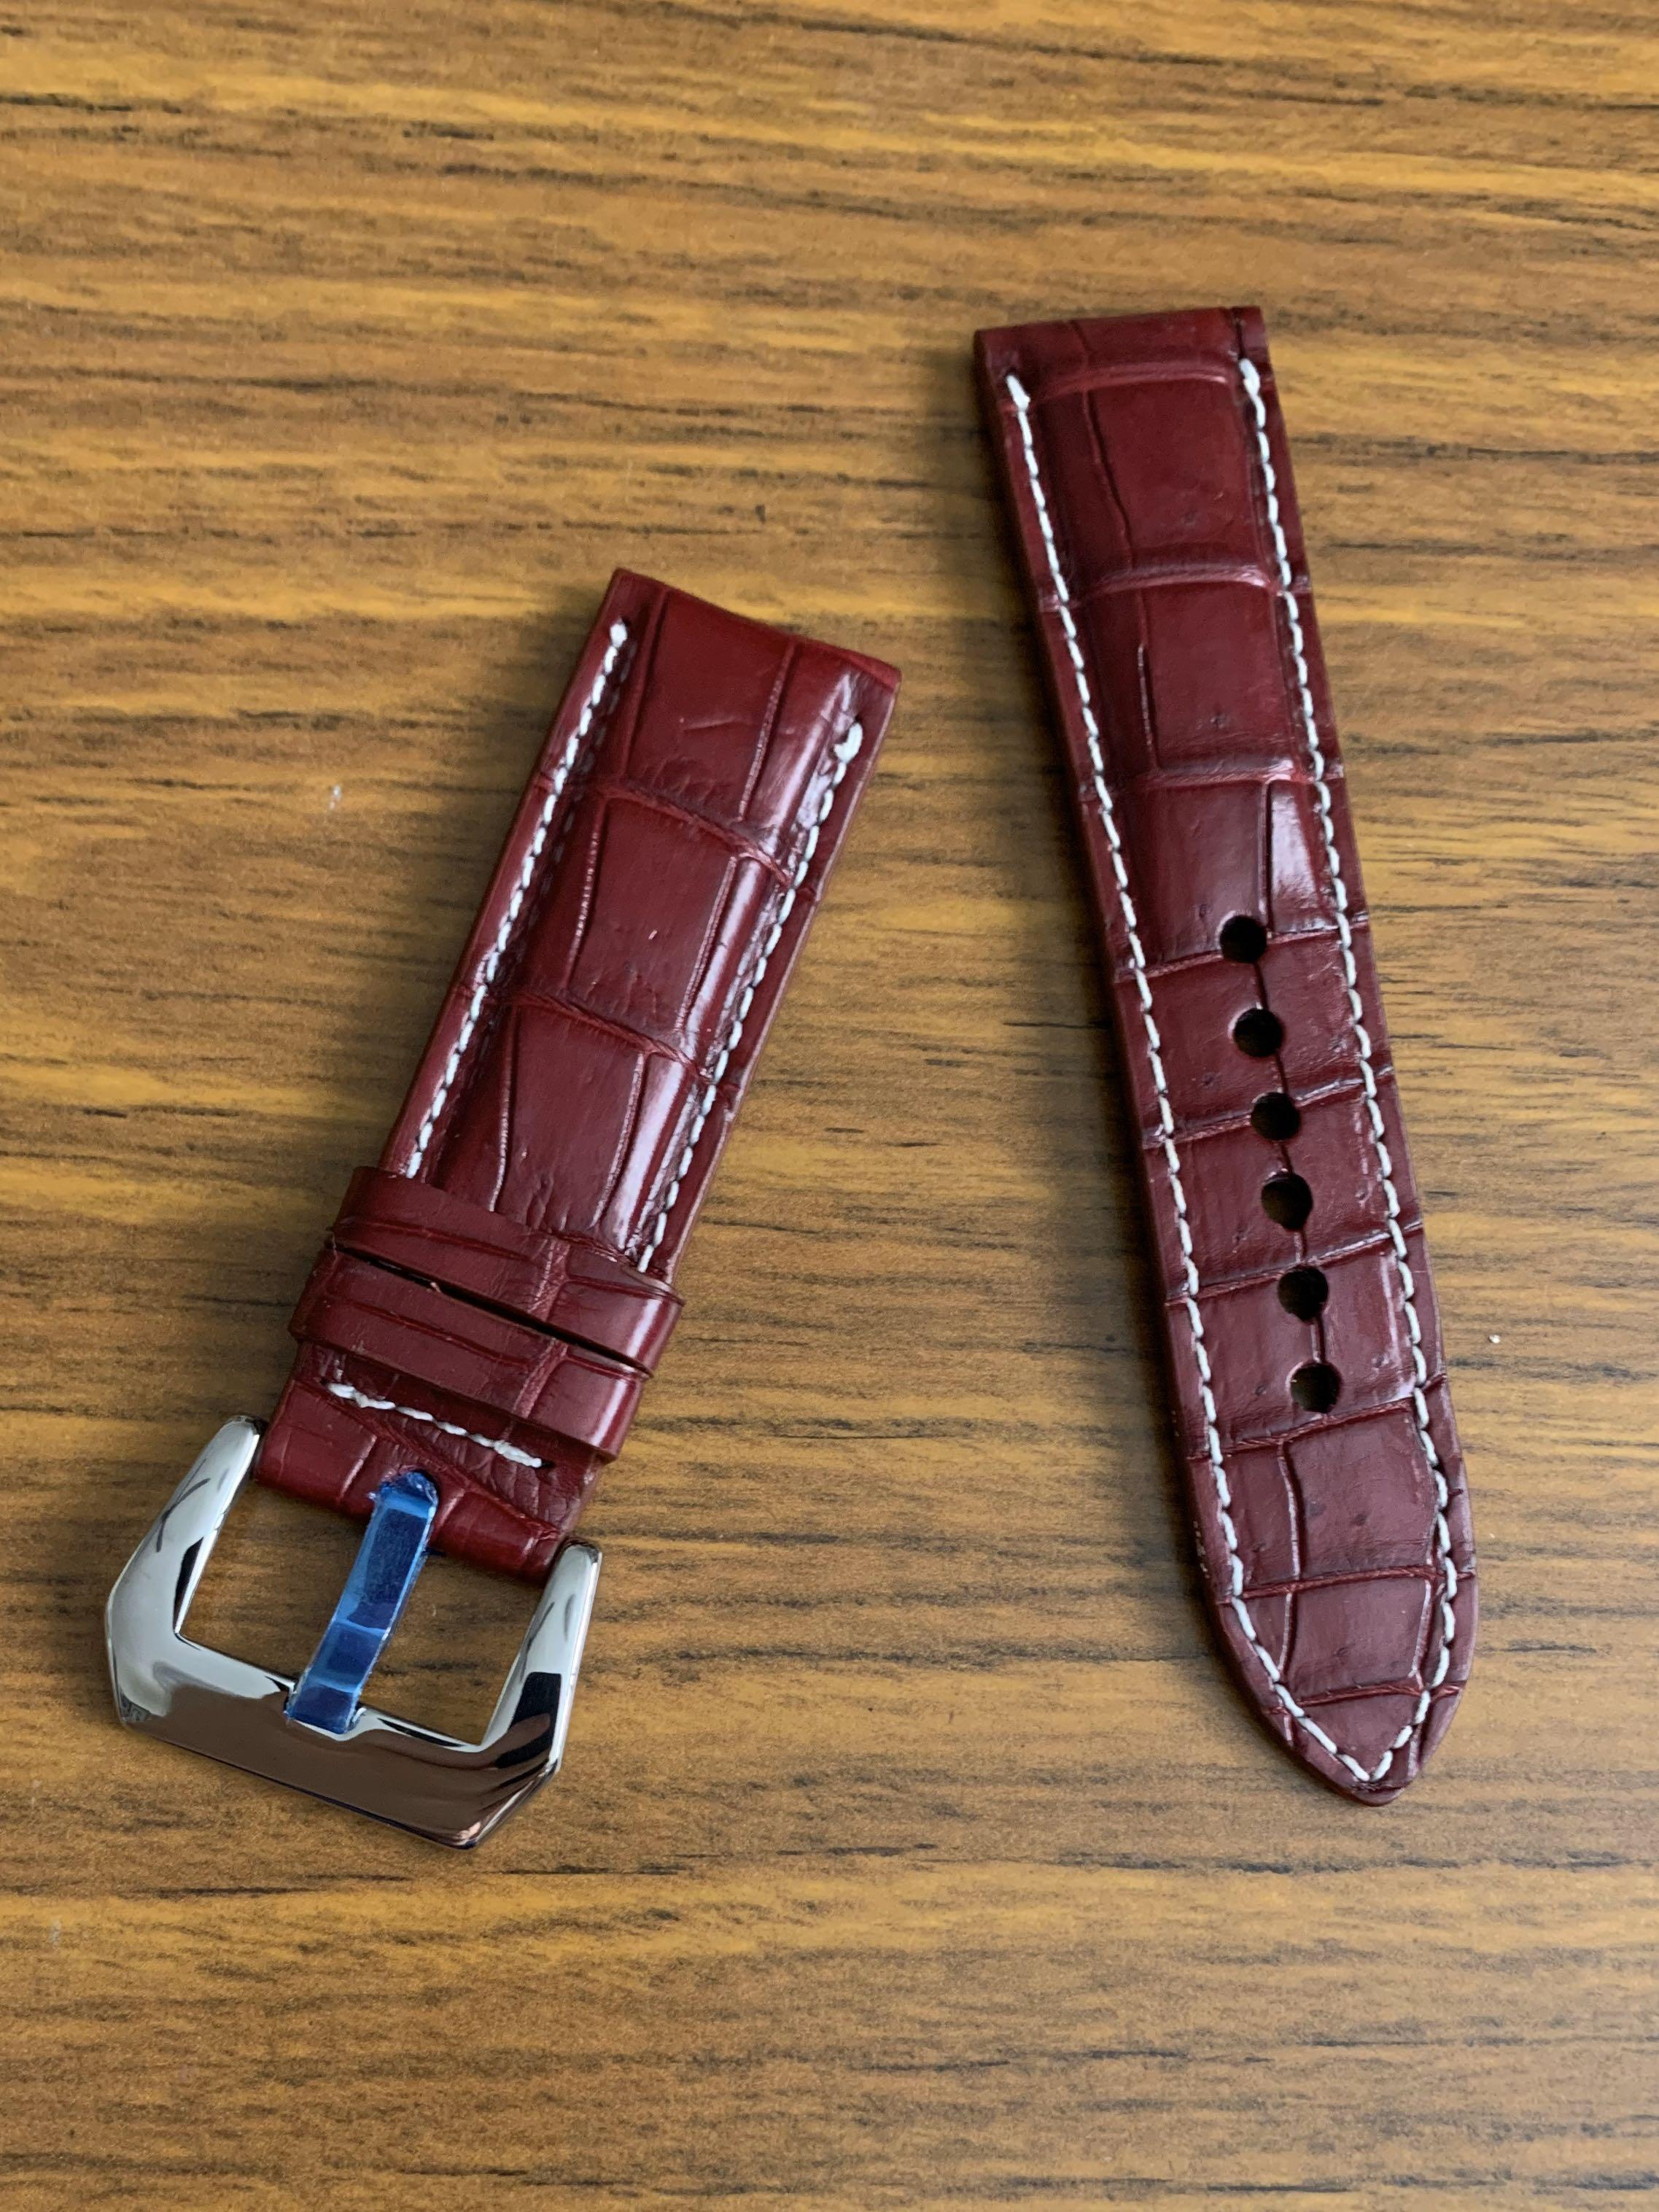 24mm/22mm Authentic Classy Oxblood Burgundy Brown Alligator 🐊  Crocodile Watch Strap with White Stitching (Standard length: L-120mm, S-75mm) (only one piece, once sold no more! 😊👍🏻)